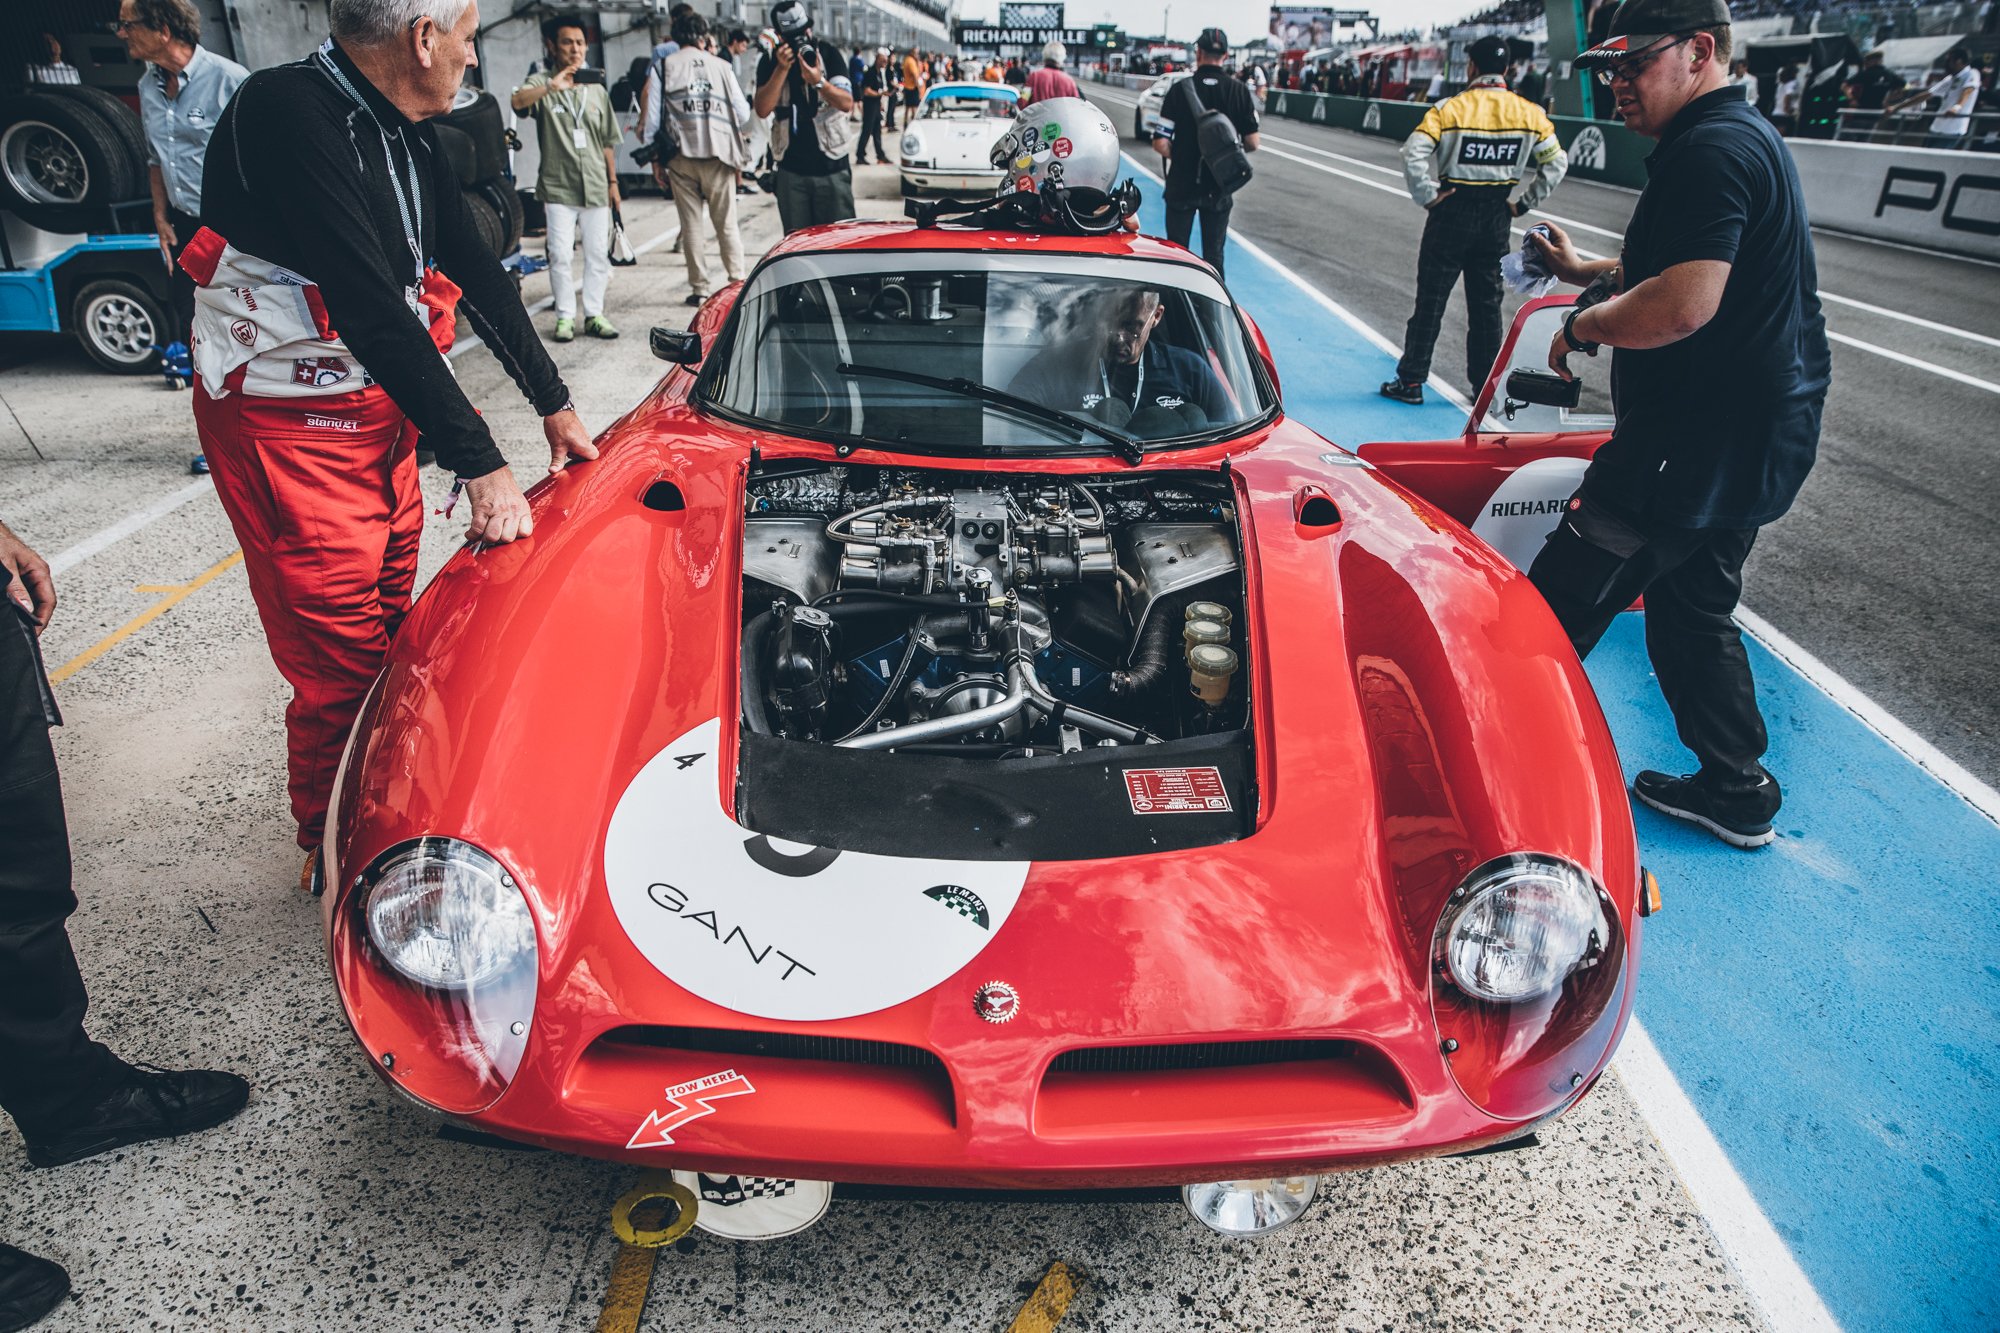 LE MANS CLASSIC: A RECORD-BREAKING EDITION